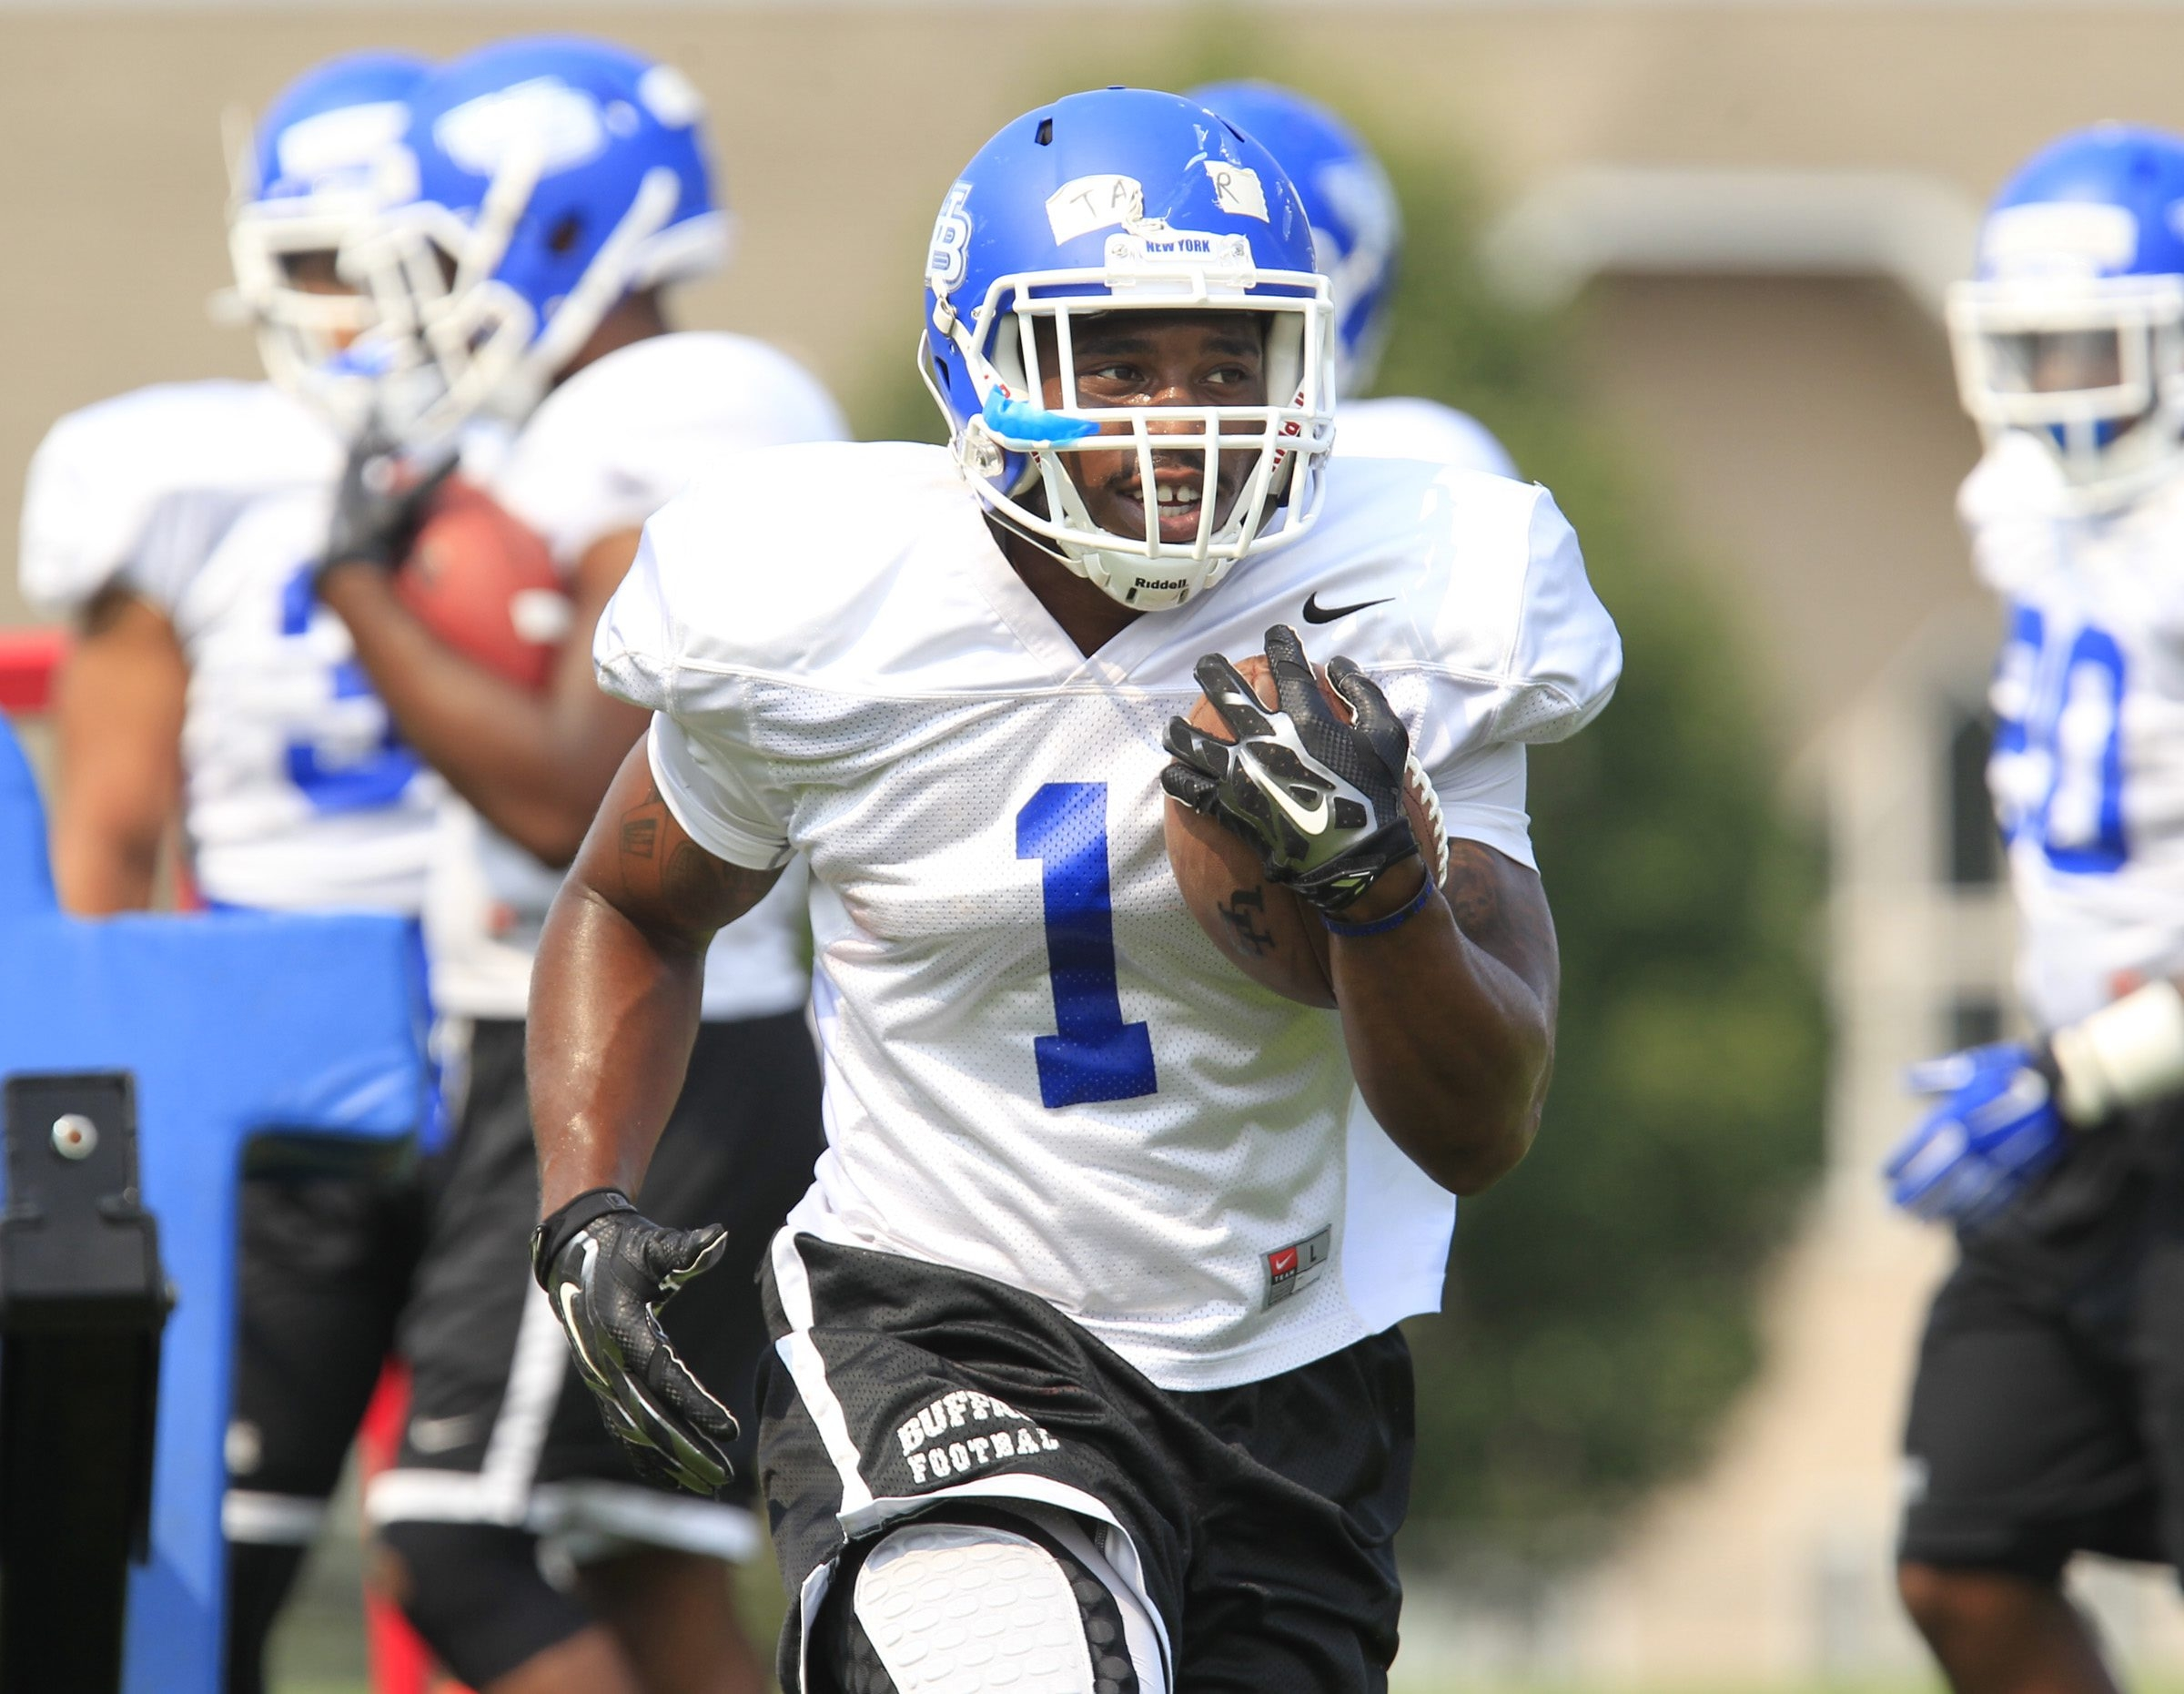 UB junior running back Anthone Taylor has earned the starter's role for the team's opener Saturday against Duquesne. Backing up Taylor will be junior Devin Campbell and sophomore Jordan Johnson, the former Sweet Home High star.